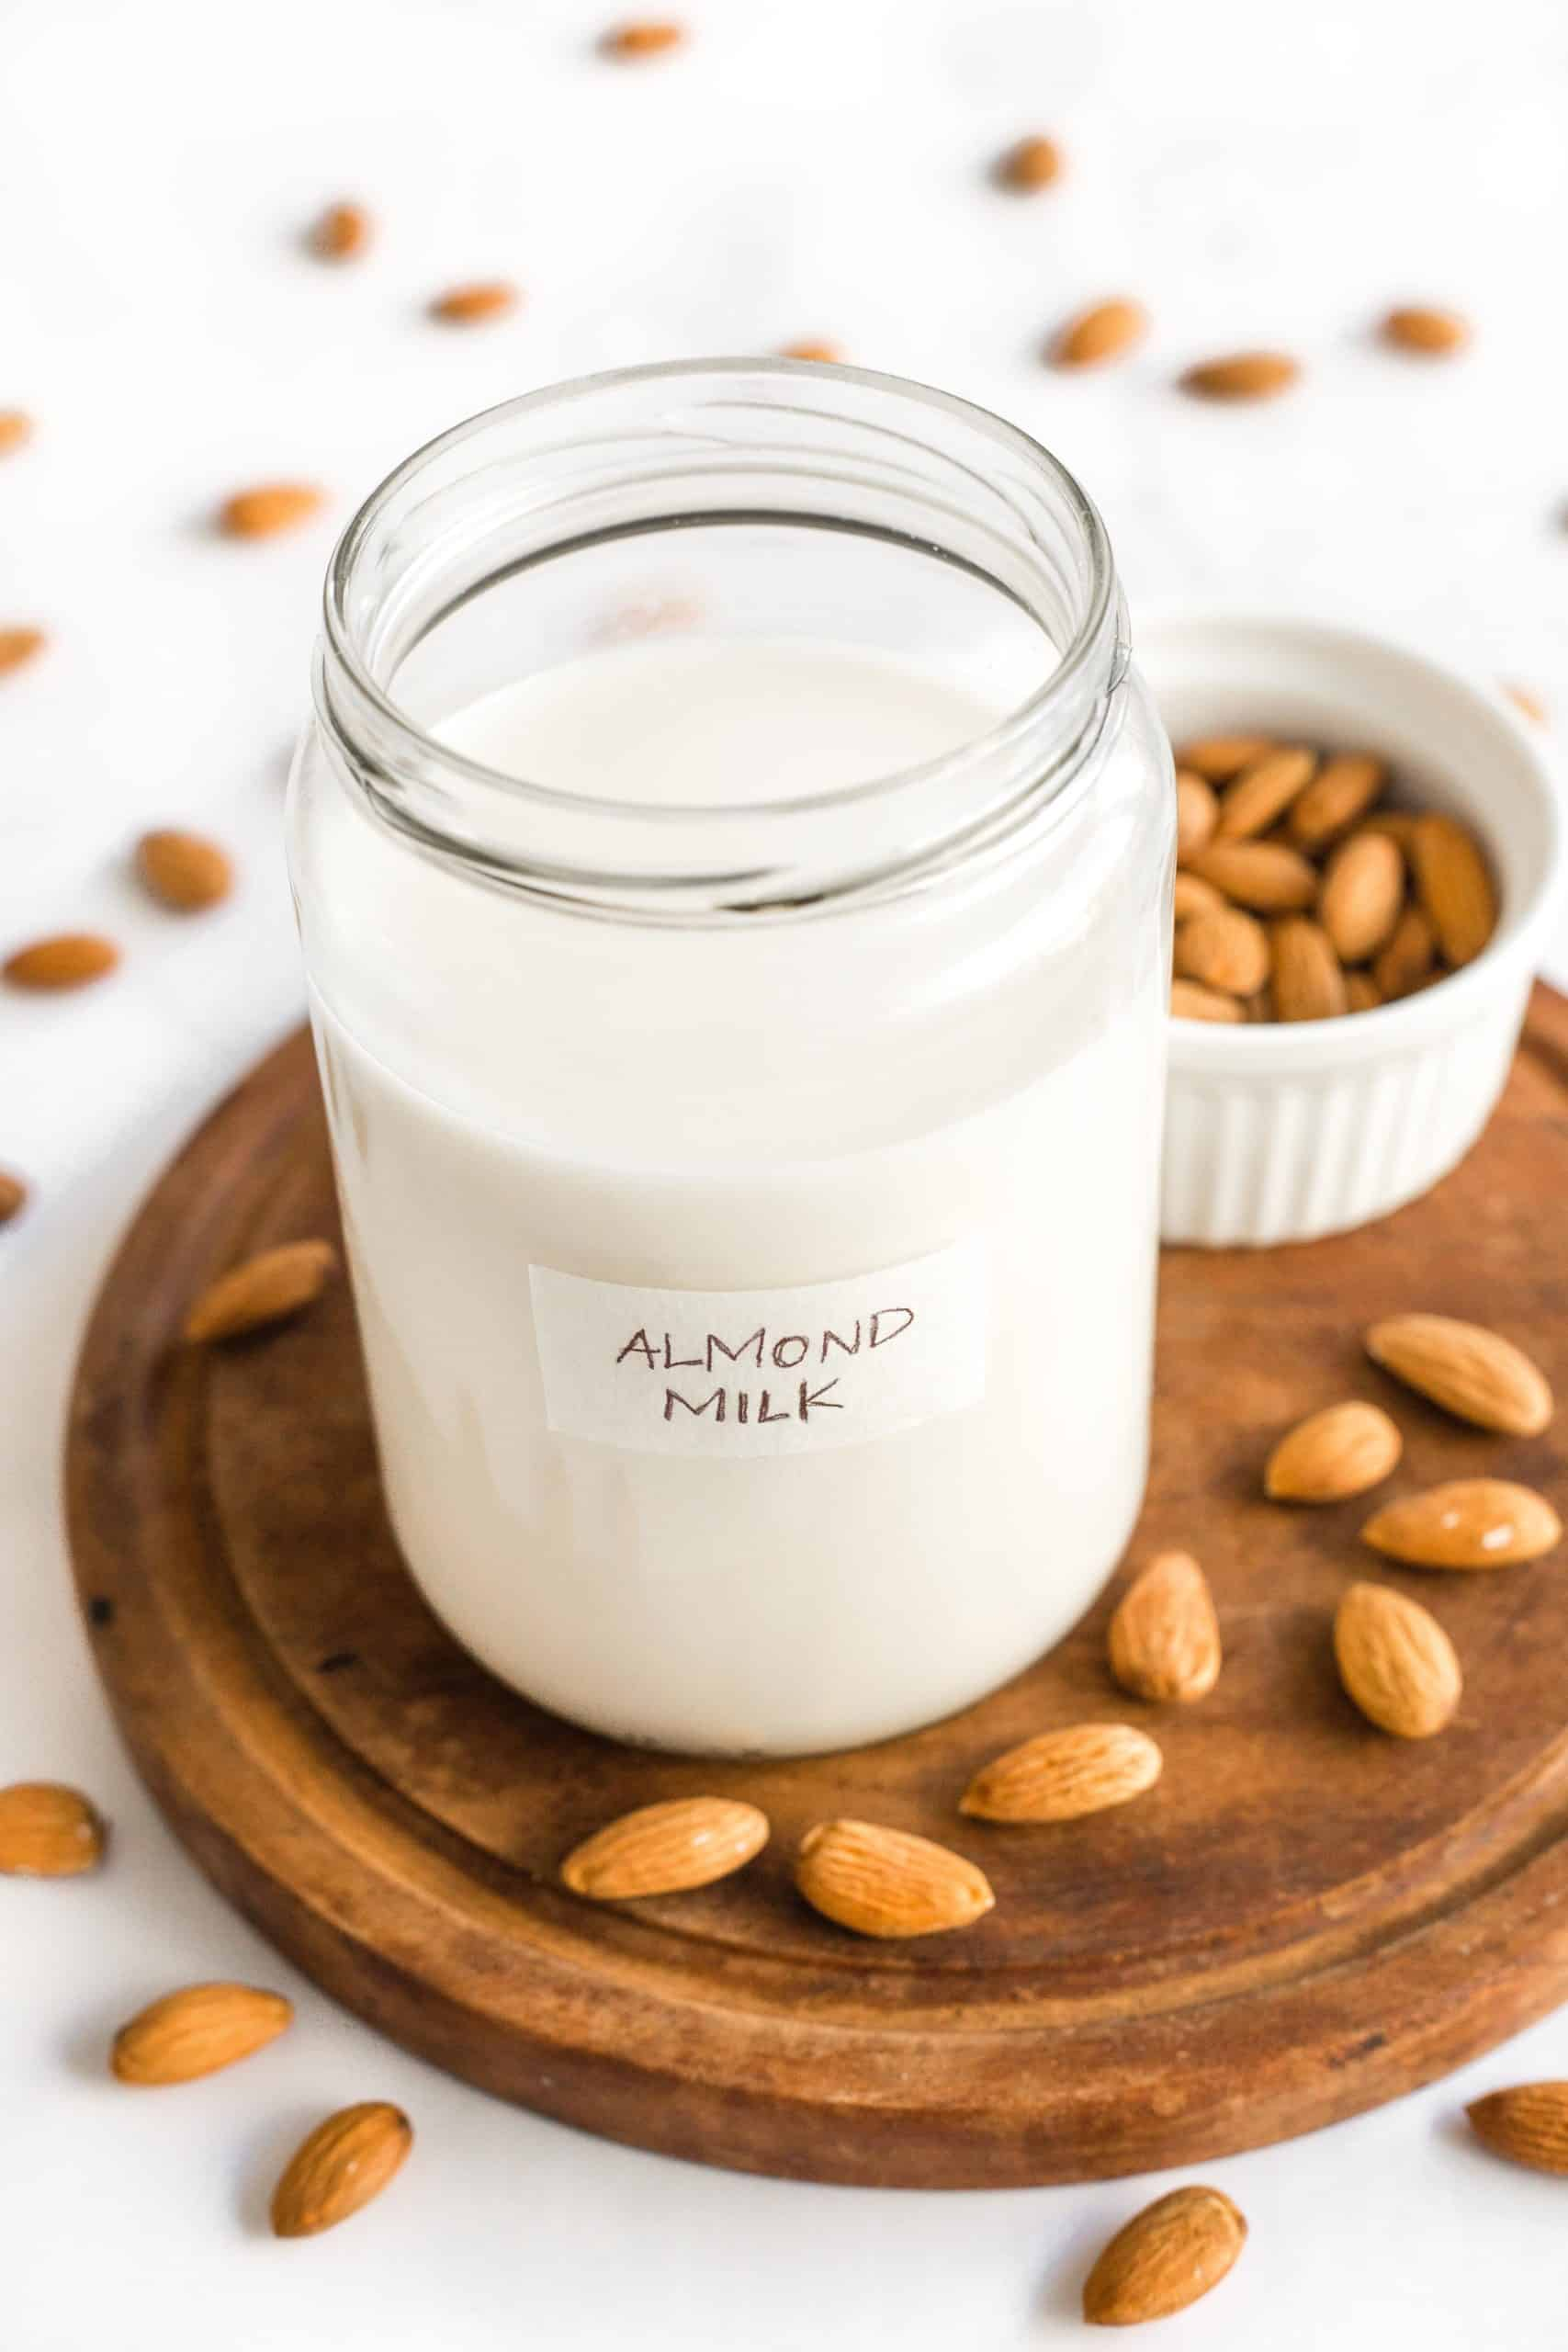 A jar of homemade almond milk on a wooden board surrounded by raw almonds.